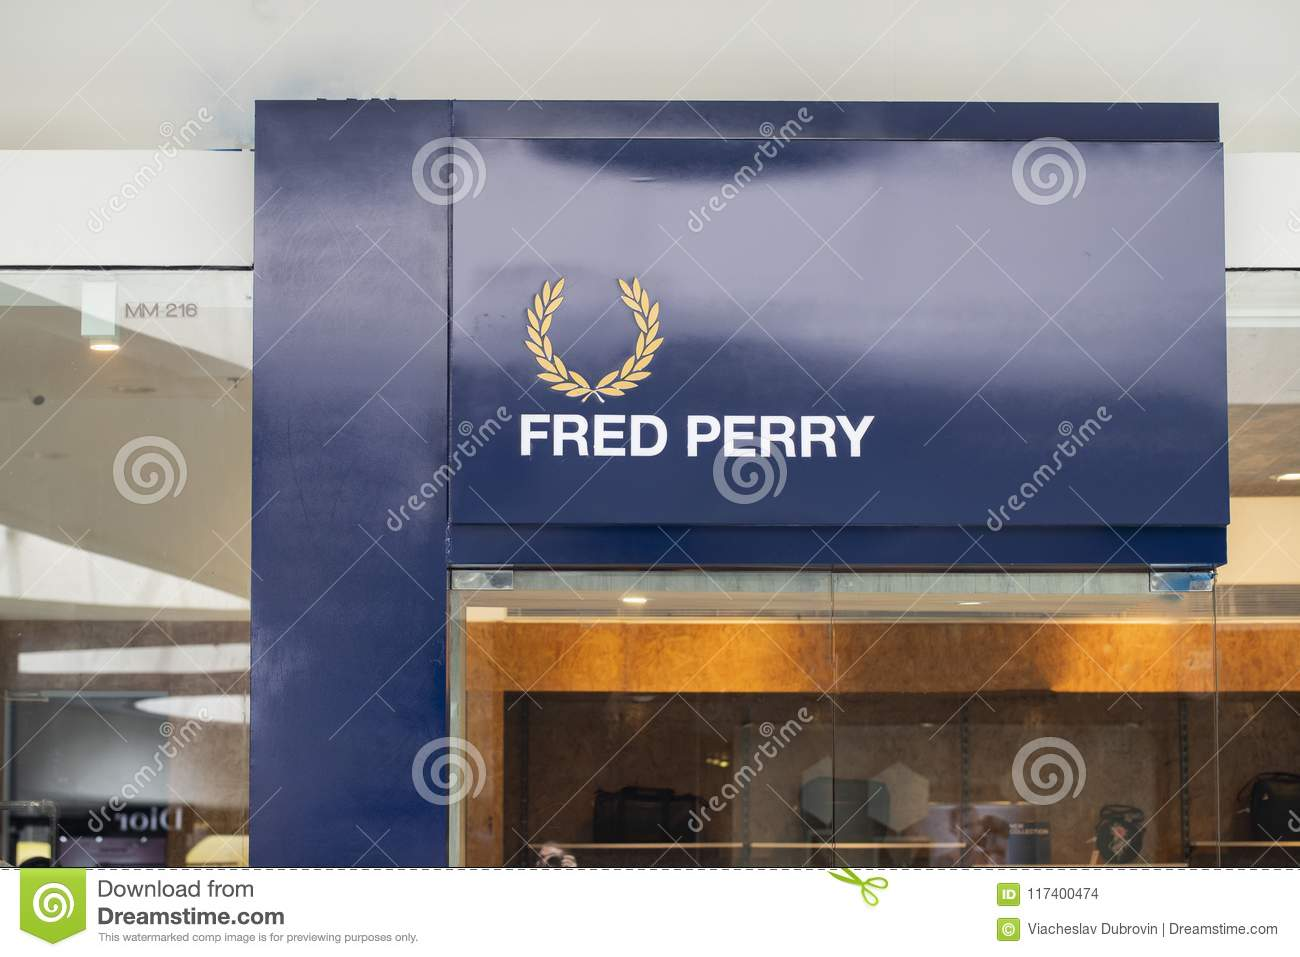 d7c2e0433 Manila, Philippines, 22 March 2018 - Fred Perry brand name on storefront in  SM Mall of Asia shopping mall.